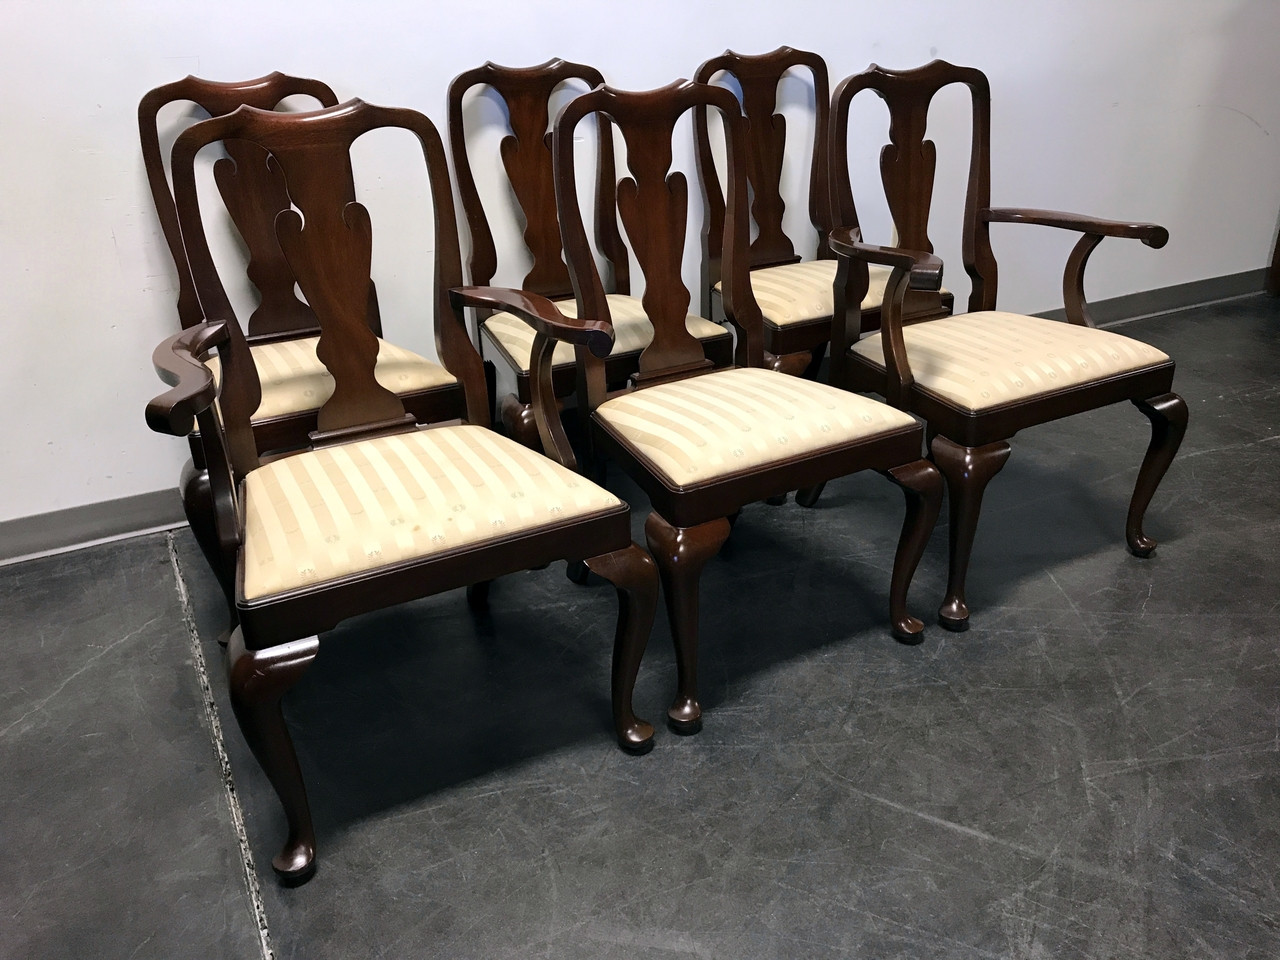 Henkel harris mahogany queen anne dining chairs set of 6 boyds henkel harris mahogany queen anne dining chairs set of 6 dzzzfo